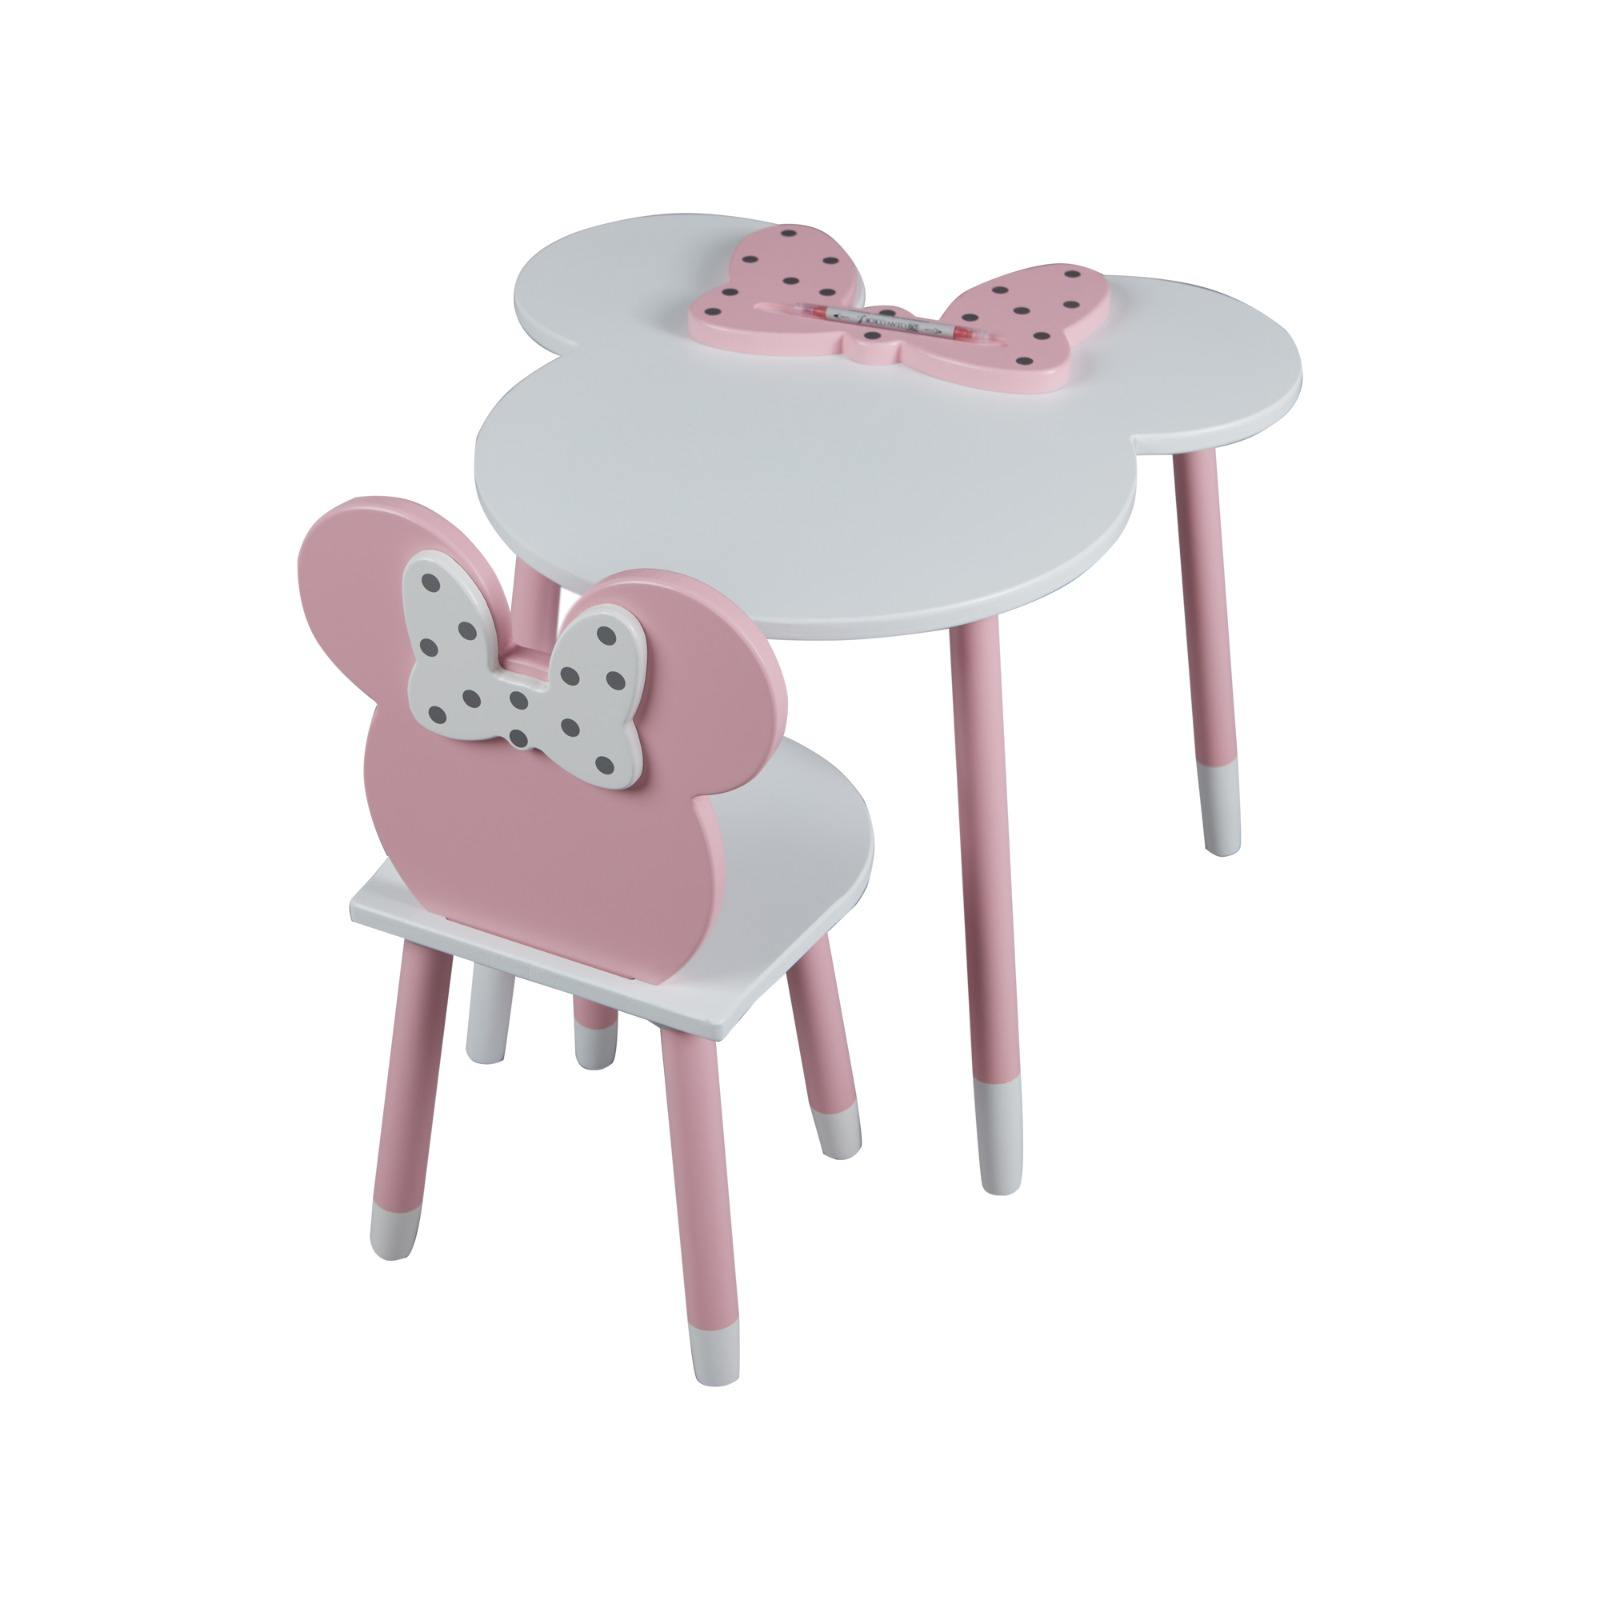 Yoyosta Kids Room Decoration High quality Wooden Kids Pink Mouse Chair and Mouse Table Set 2 3 4 5 6 7 8 9 Years 1